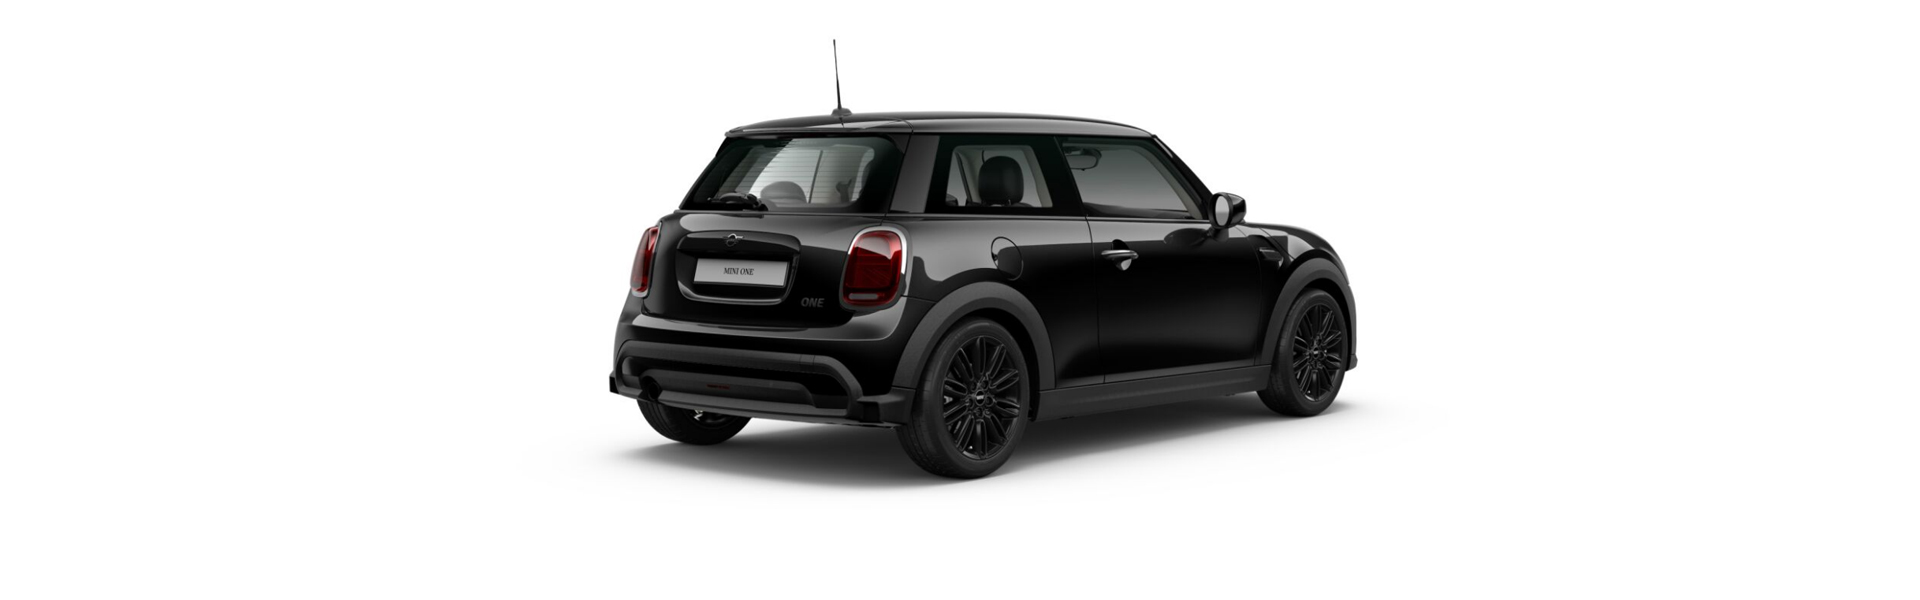 MINI One Blackyard LCI inkl. Winterradsatz